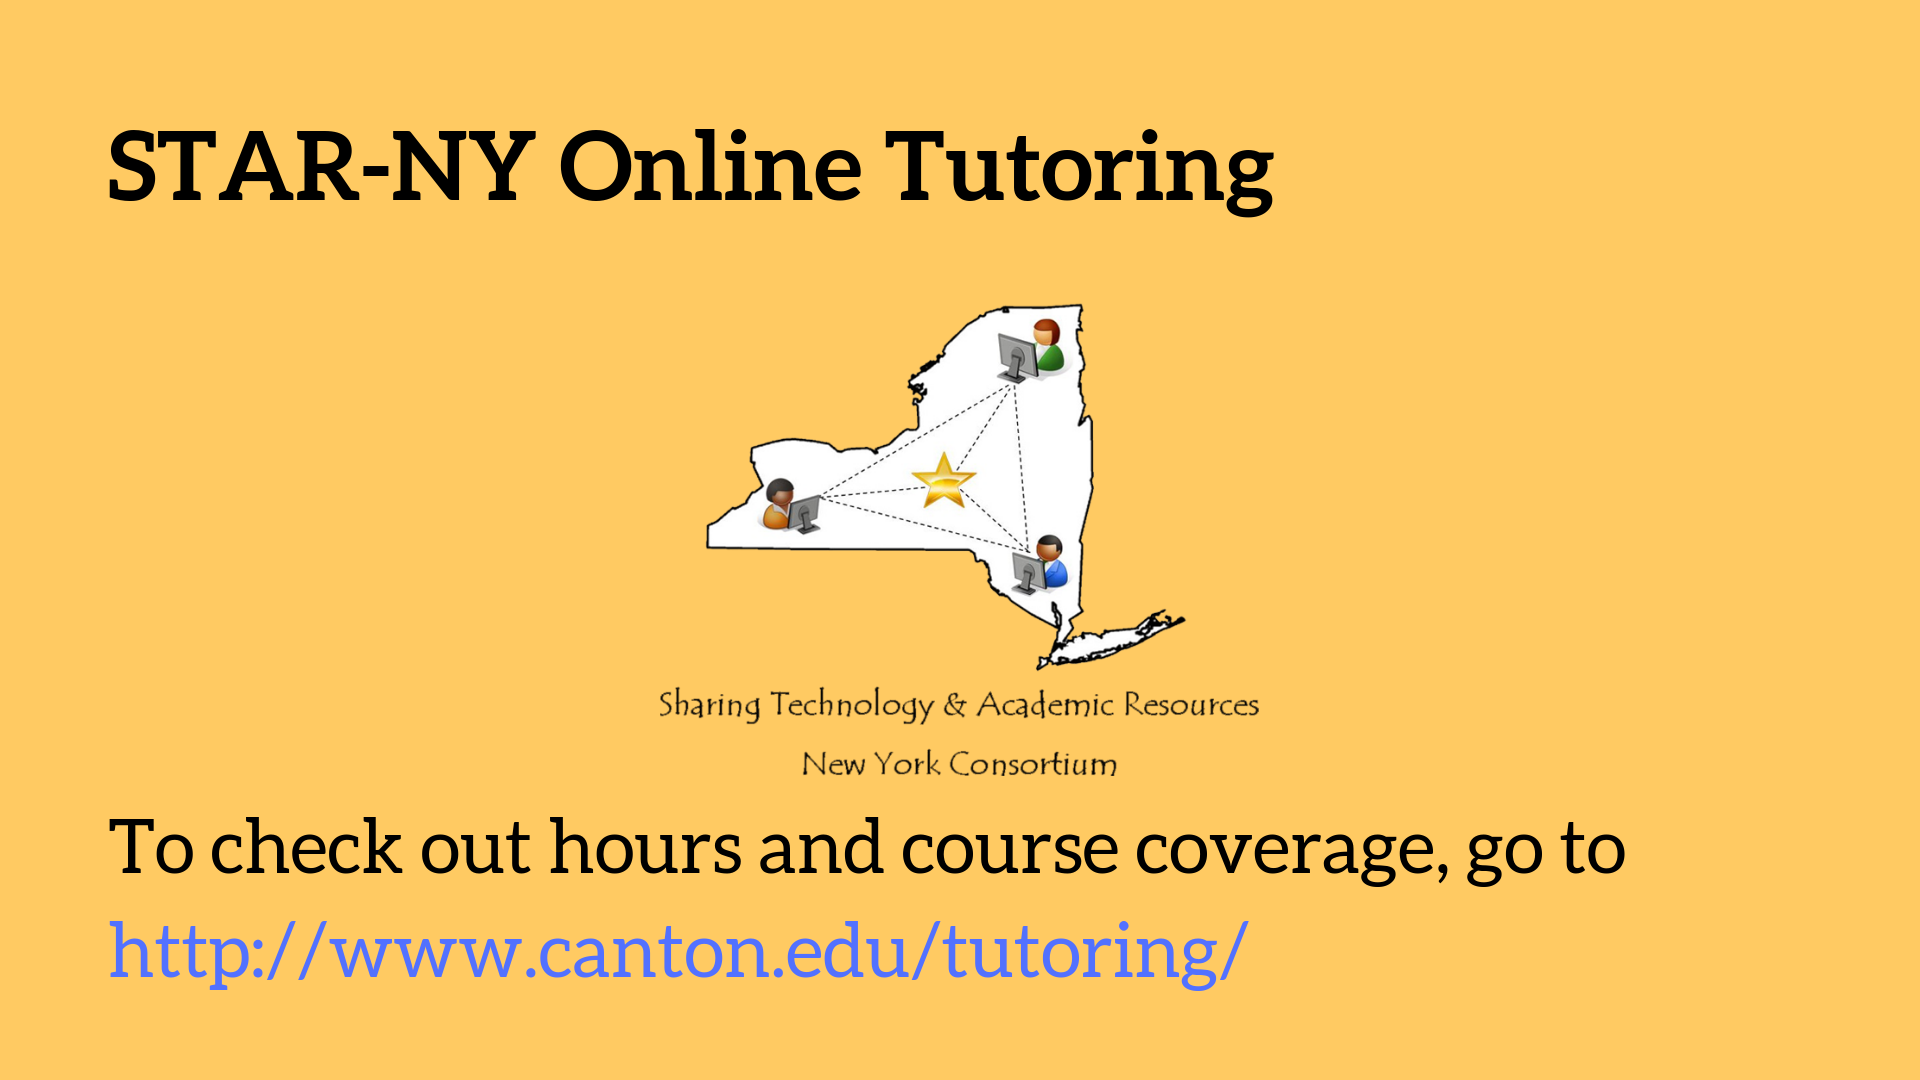 STAR-NY Online Tutoring: To check out hours and course coverage, go to http://www.canton.edu/tutoring/